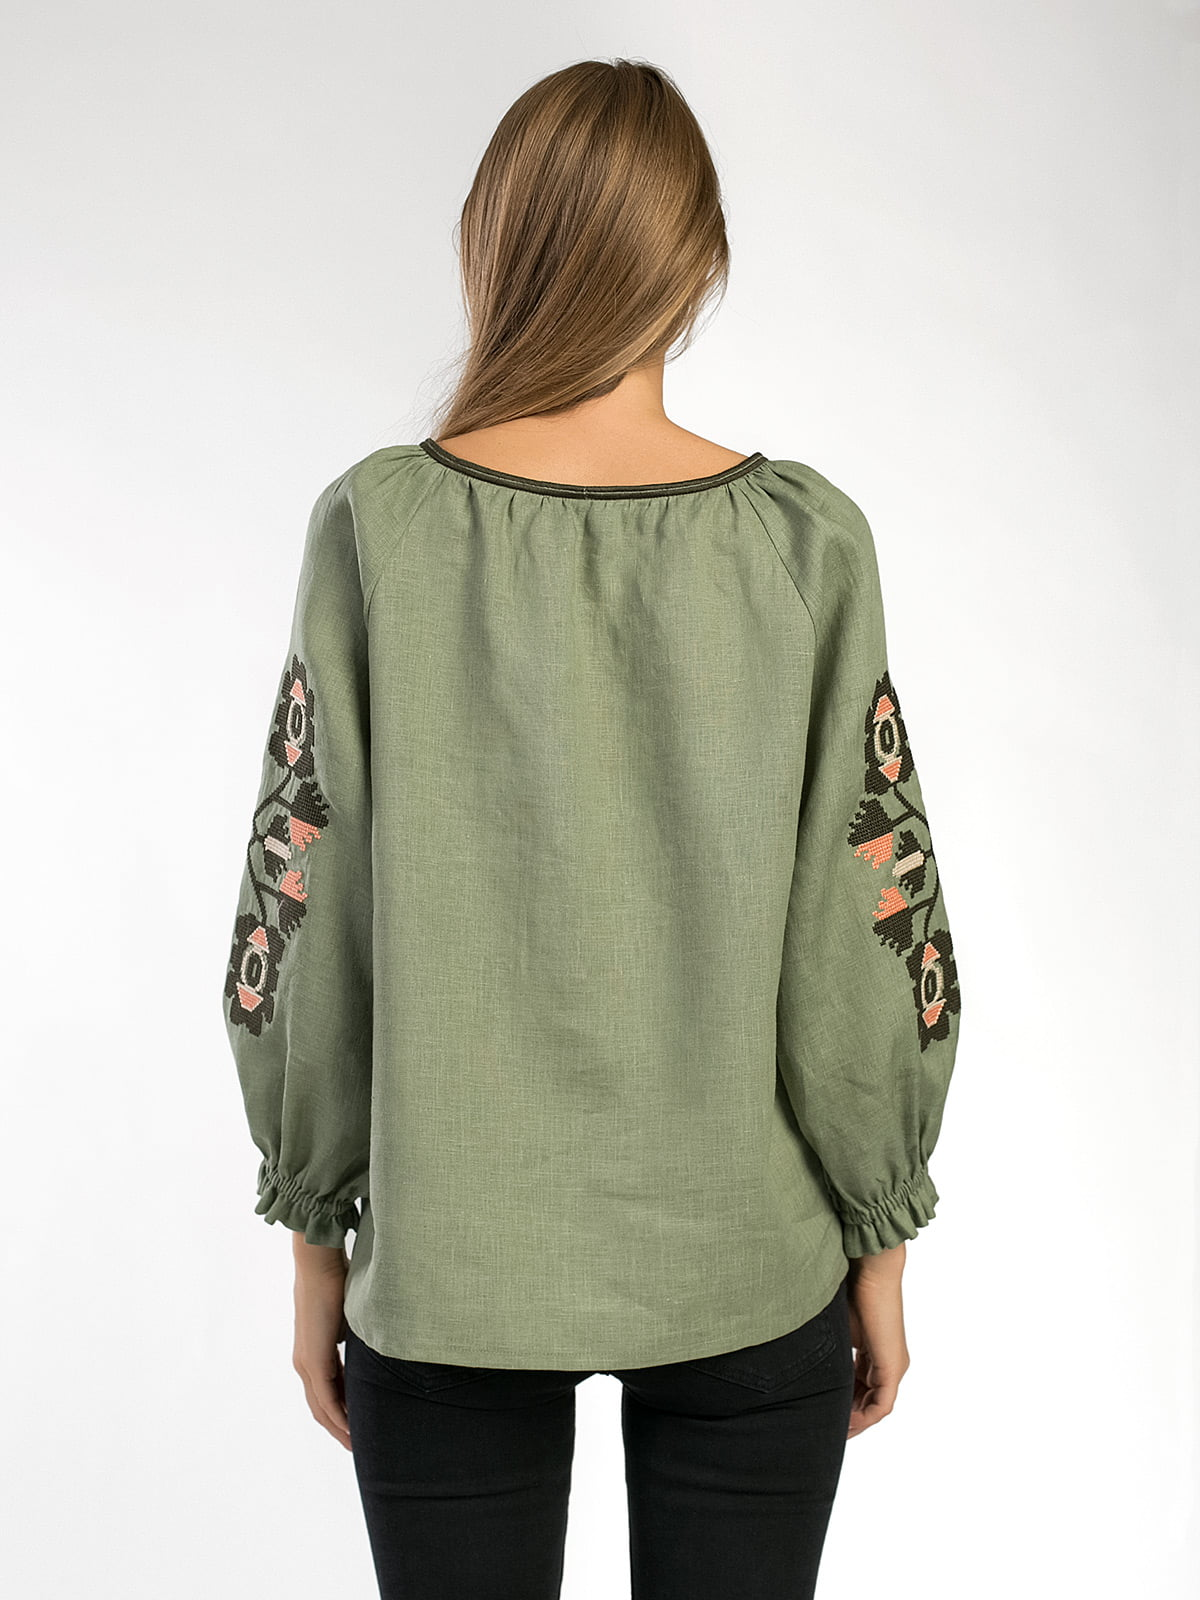 Embroidered shirt in olive linen Werba 4